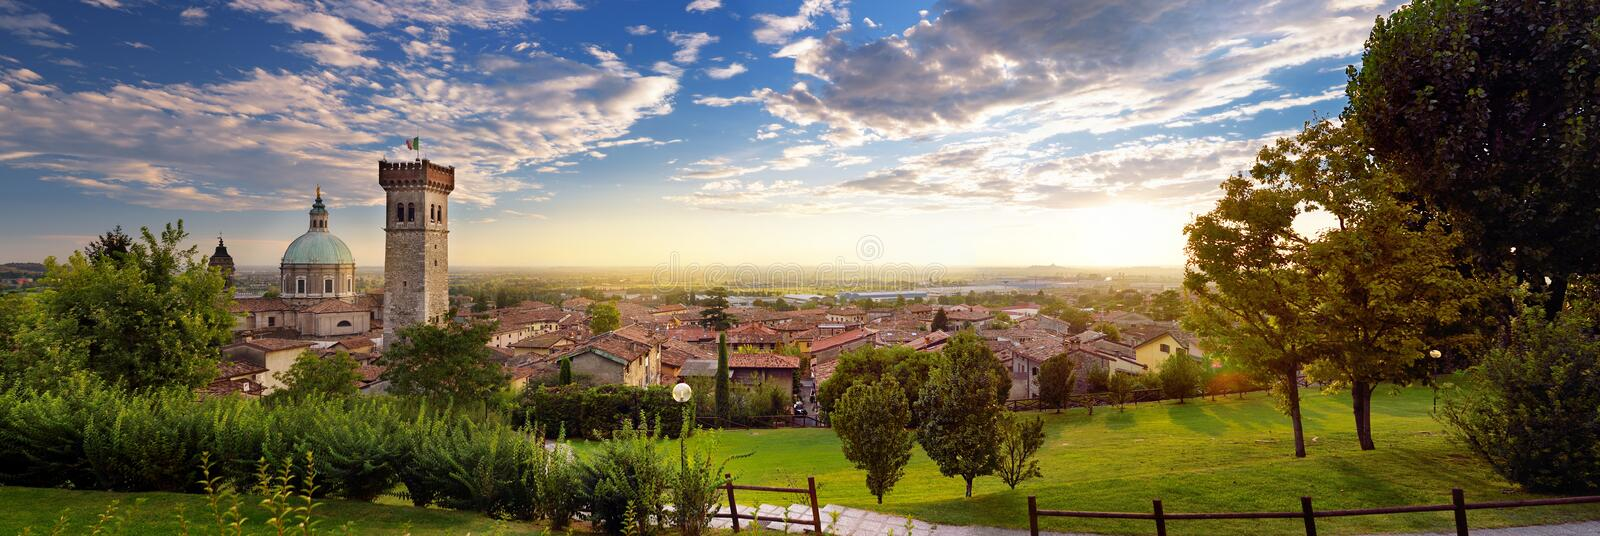 Beautiful sunset view of Lonato del Garda, a town and comune in the province of Brescia, Italy stock photos